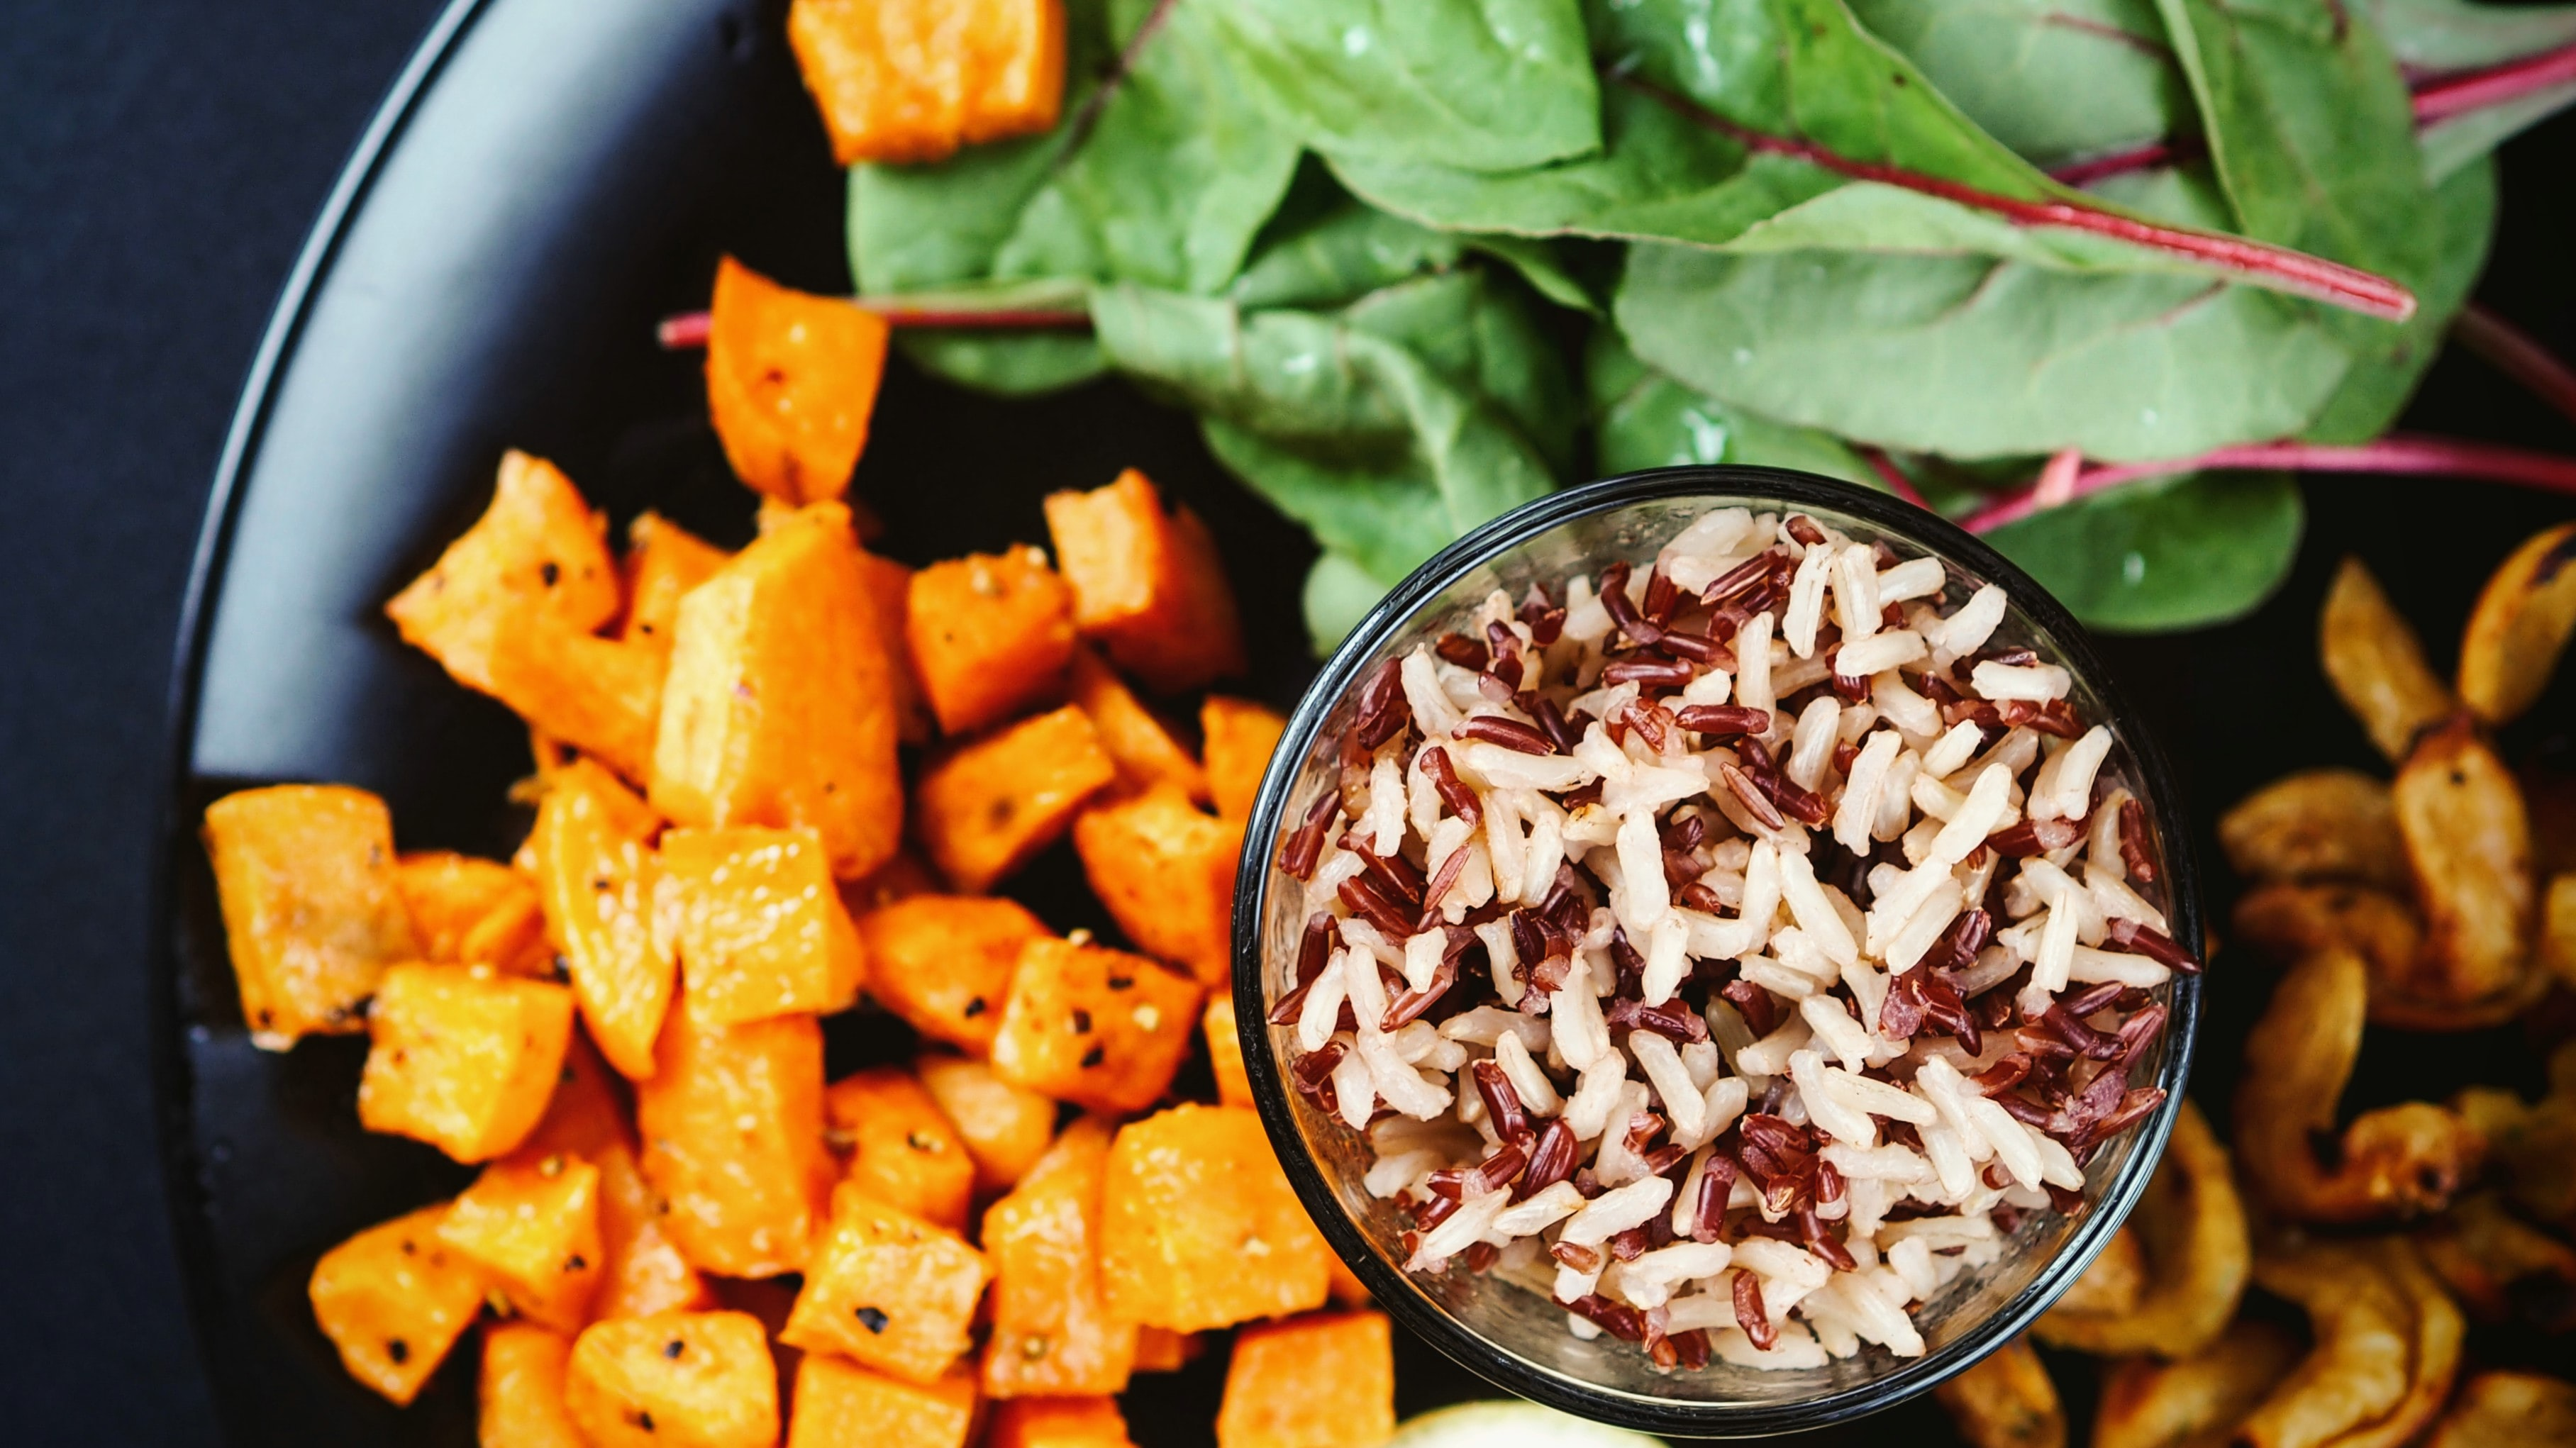 A glass of mixed red and white rice on a plate of salad greens, cooked shrimp and diced sweet potatoes